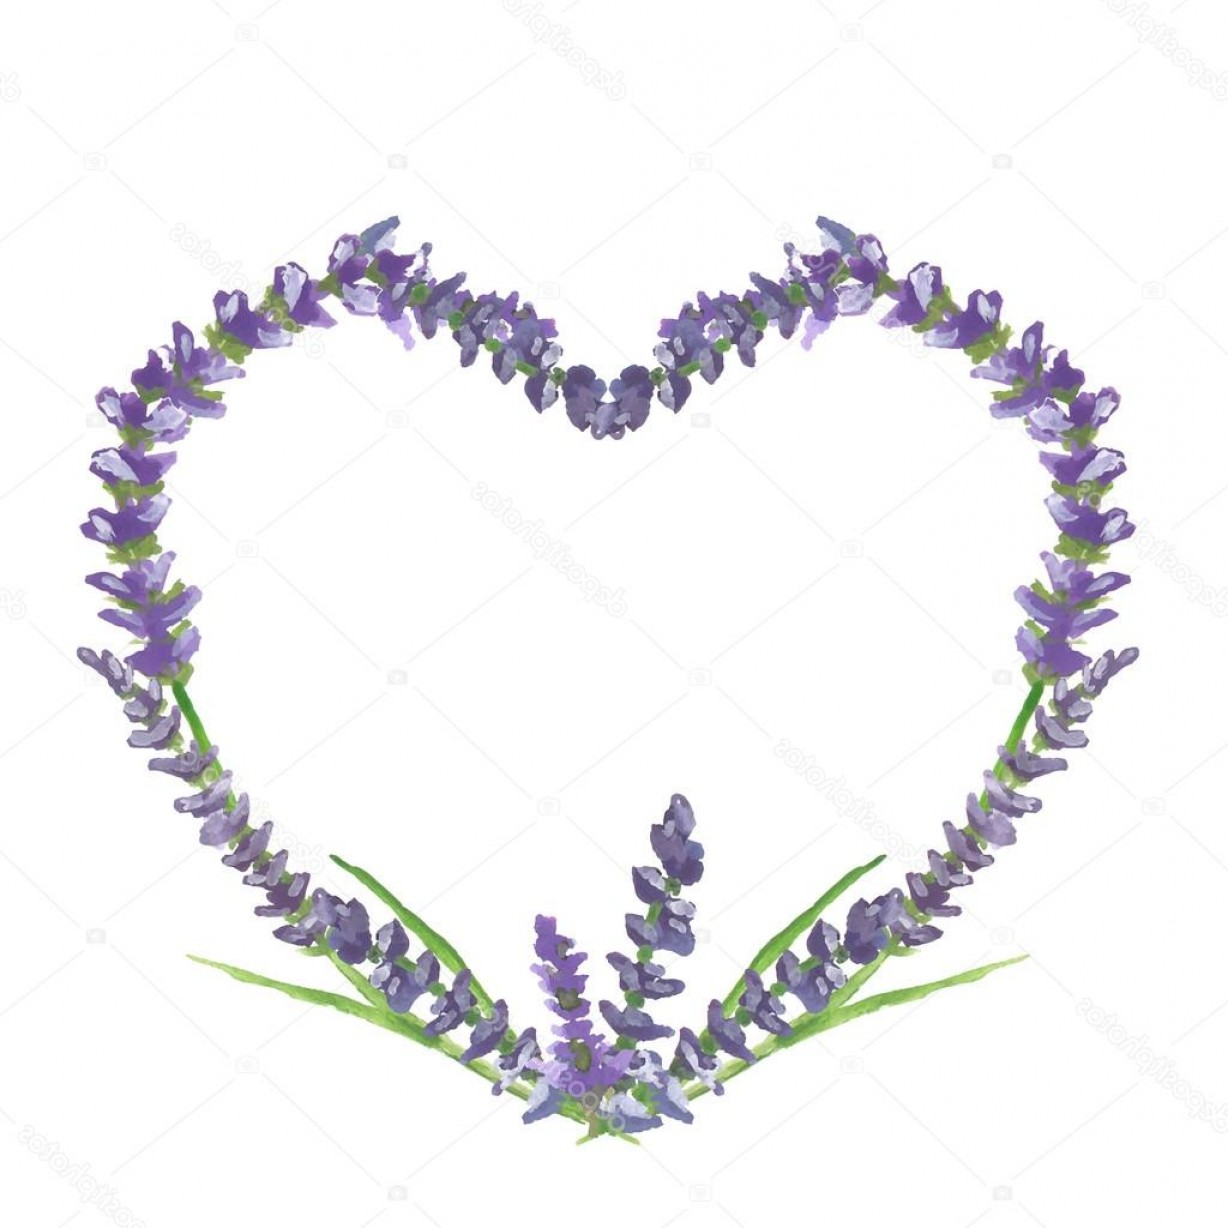 Lilac Wedding Vectors: Stock Illustration Lavender Heart Wedding Or Valentine